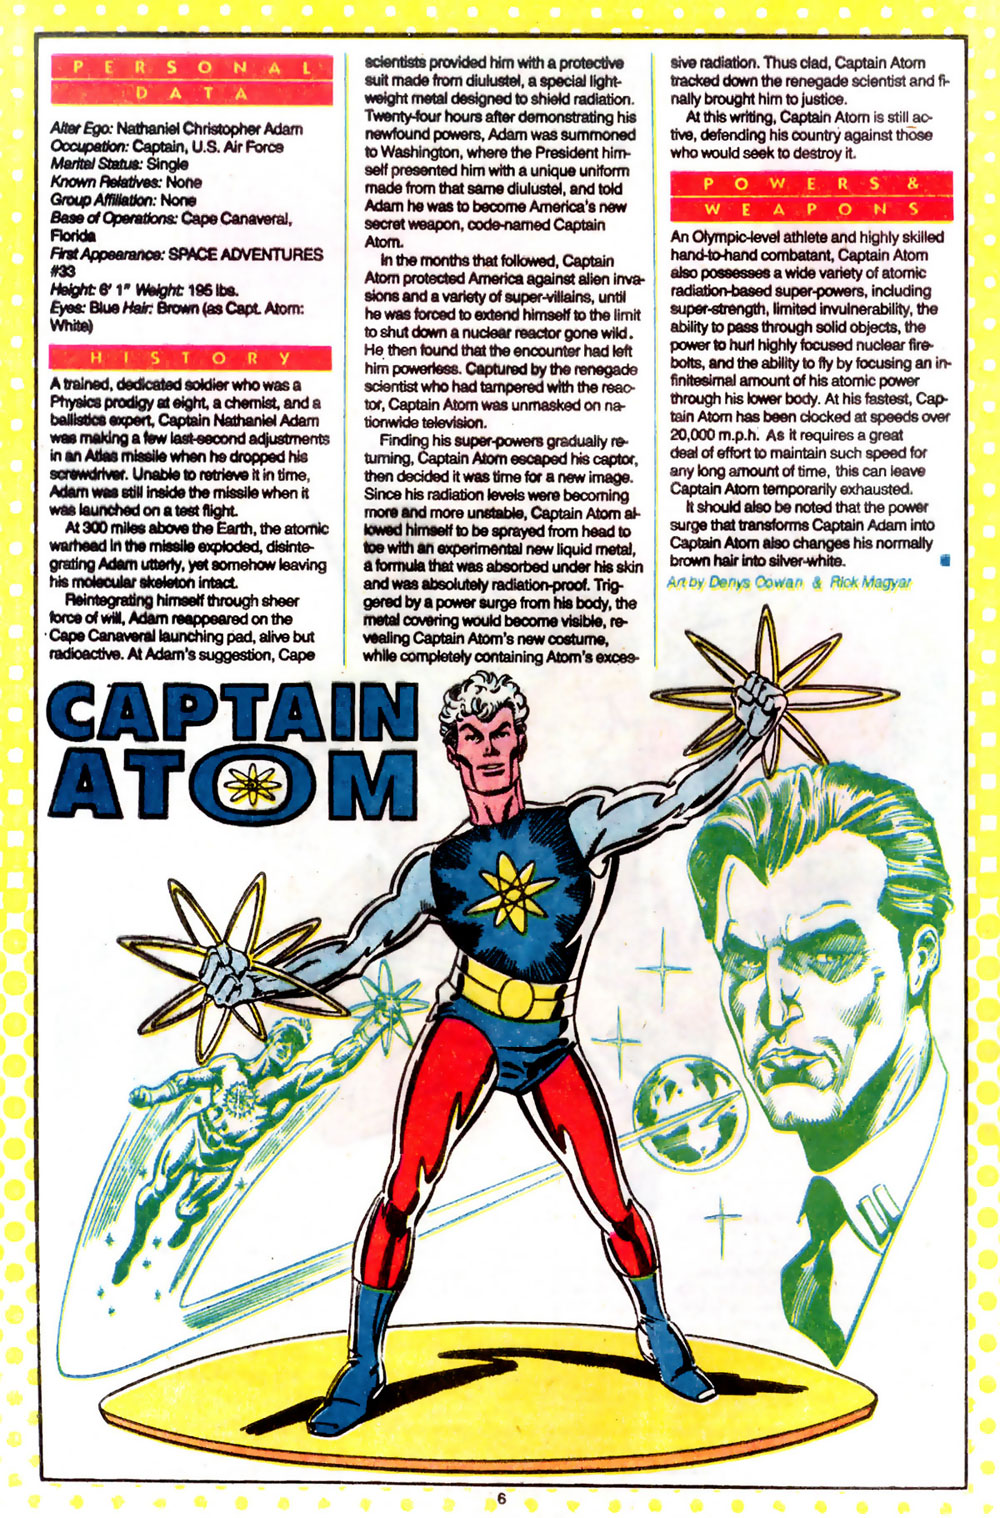 Captain Atom Who's Who entry by Denys Cowan and Rick Magyar